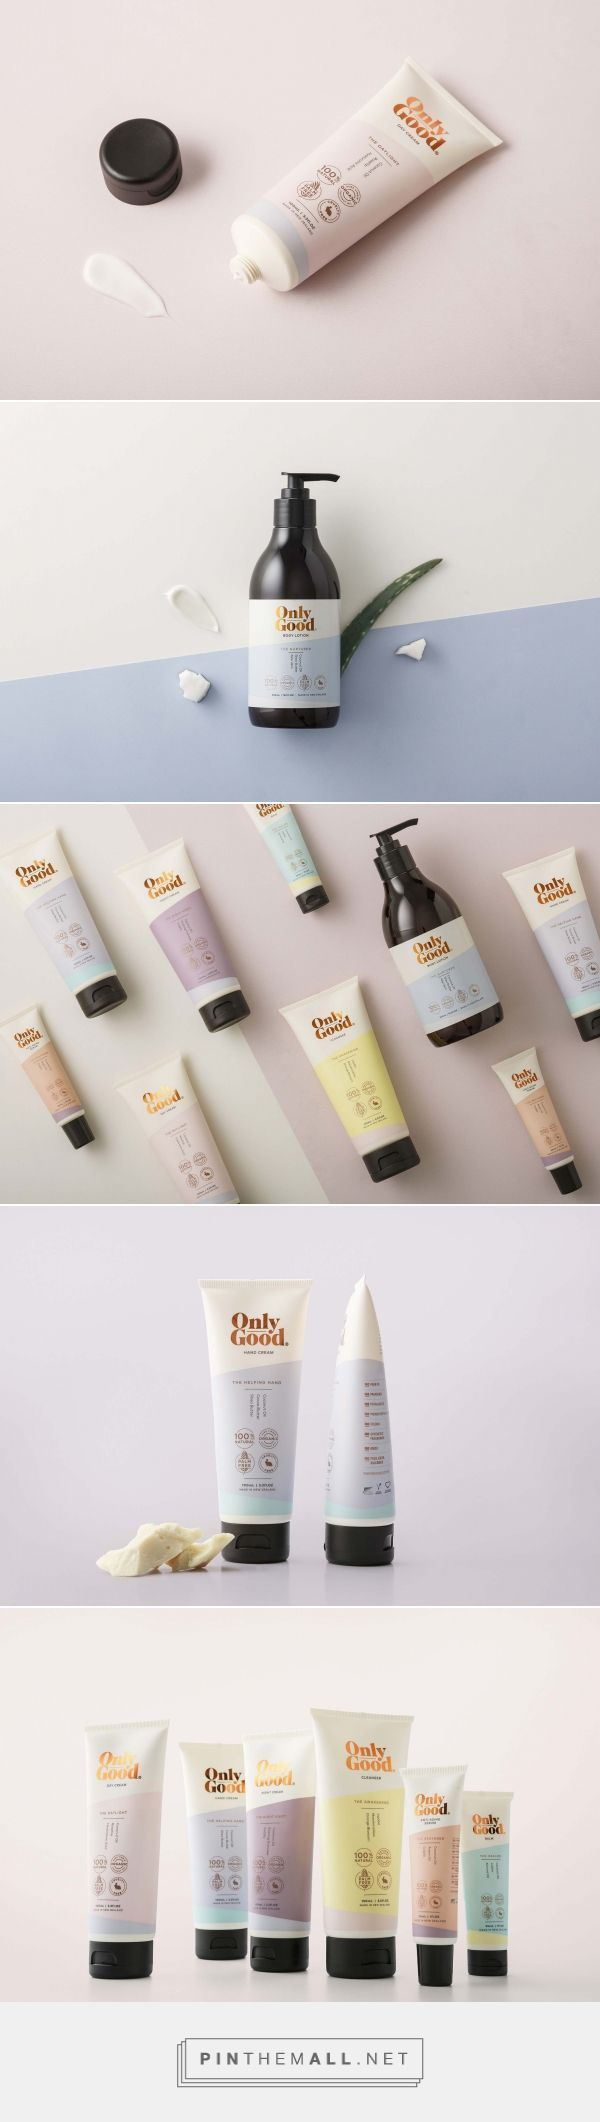 Only Good Skin Care Packaging by Milk NZ Limited | Fivestar Branding Agency – Design and Branding Agency & Curated Inspiration Gallery